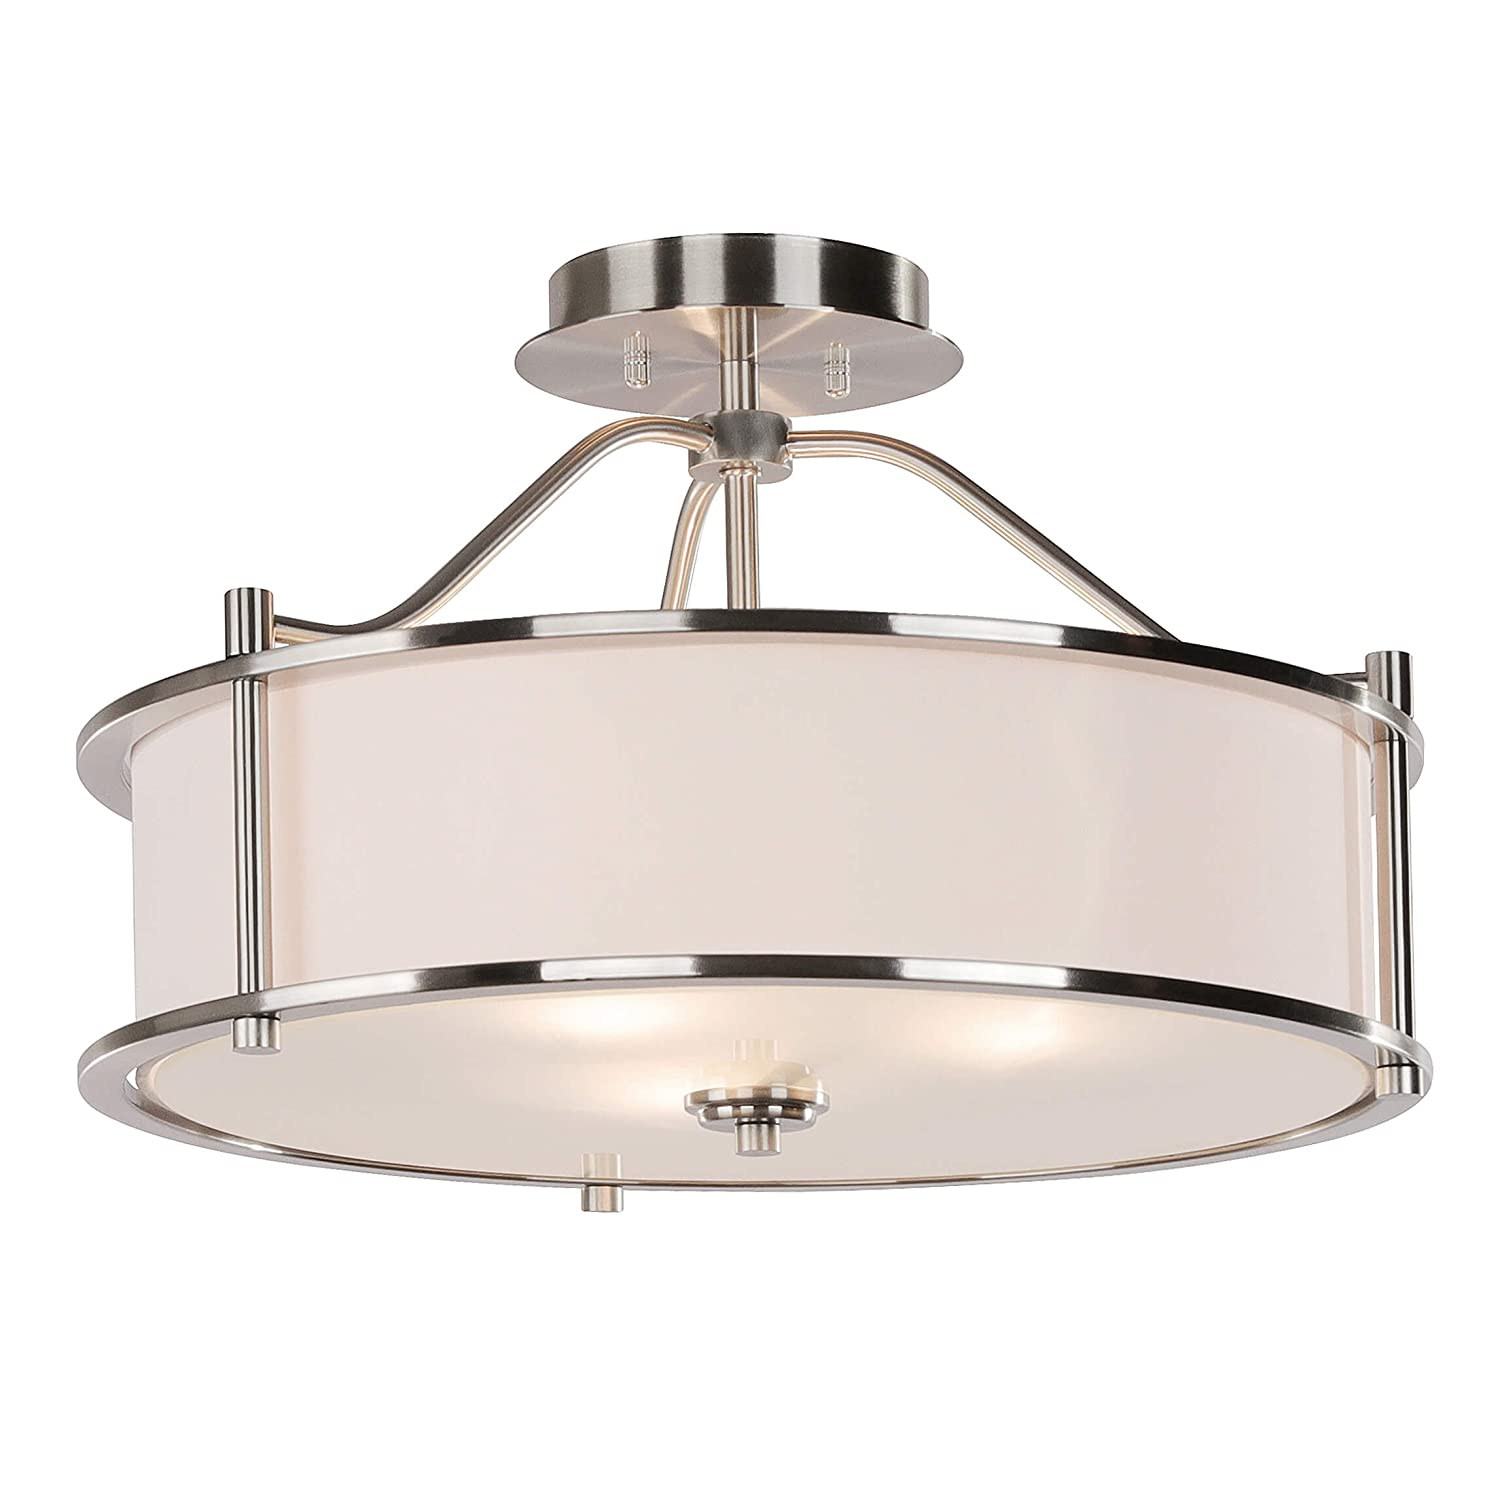 Semi flush mount ceiling light 18 inch 3 light close to ceiling light with fabric shade and glass diffuser brushed nickel drum semi flush light for